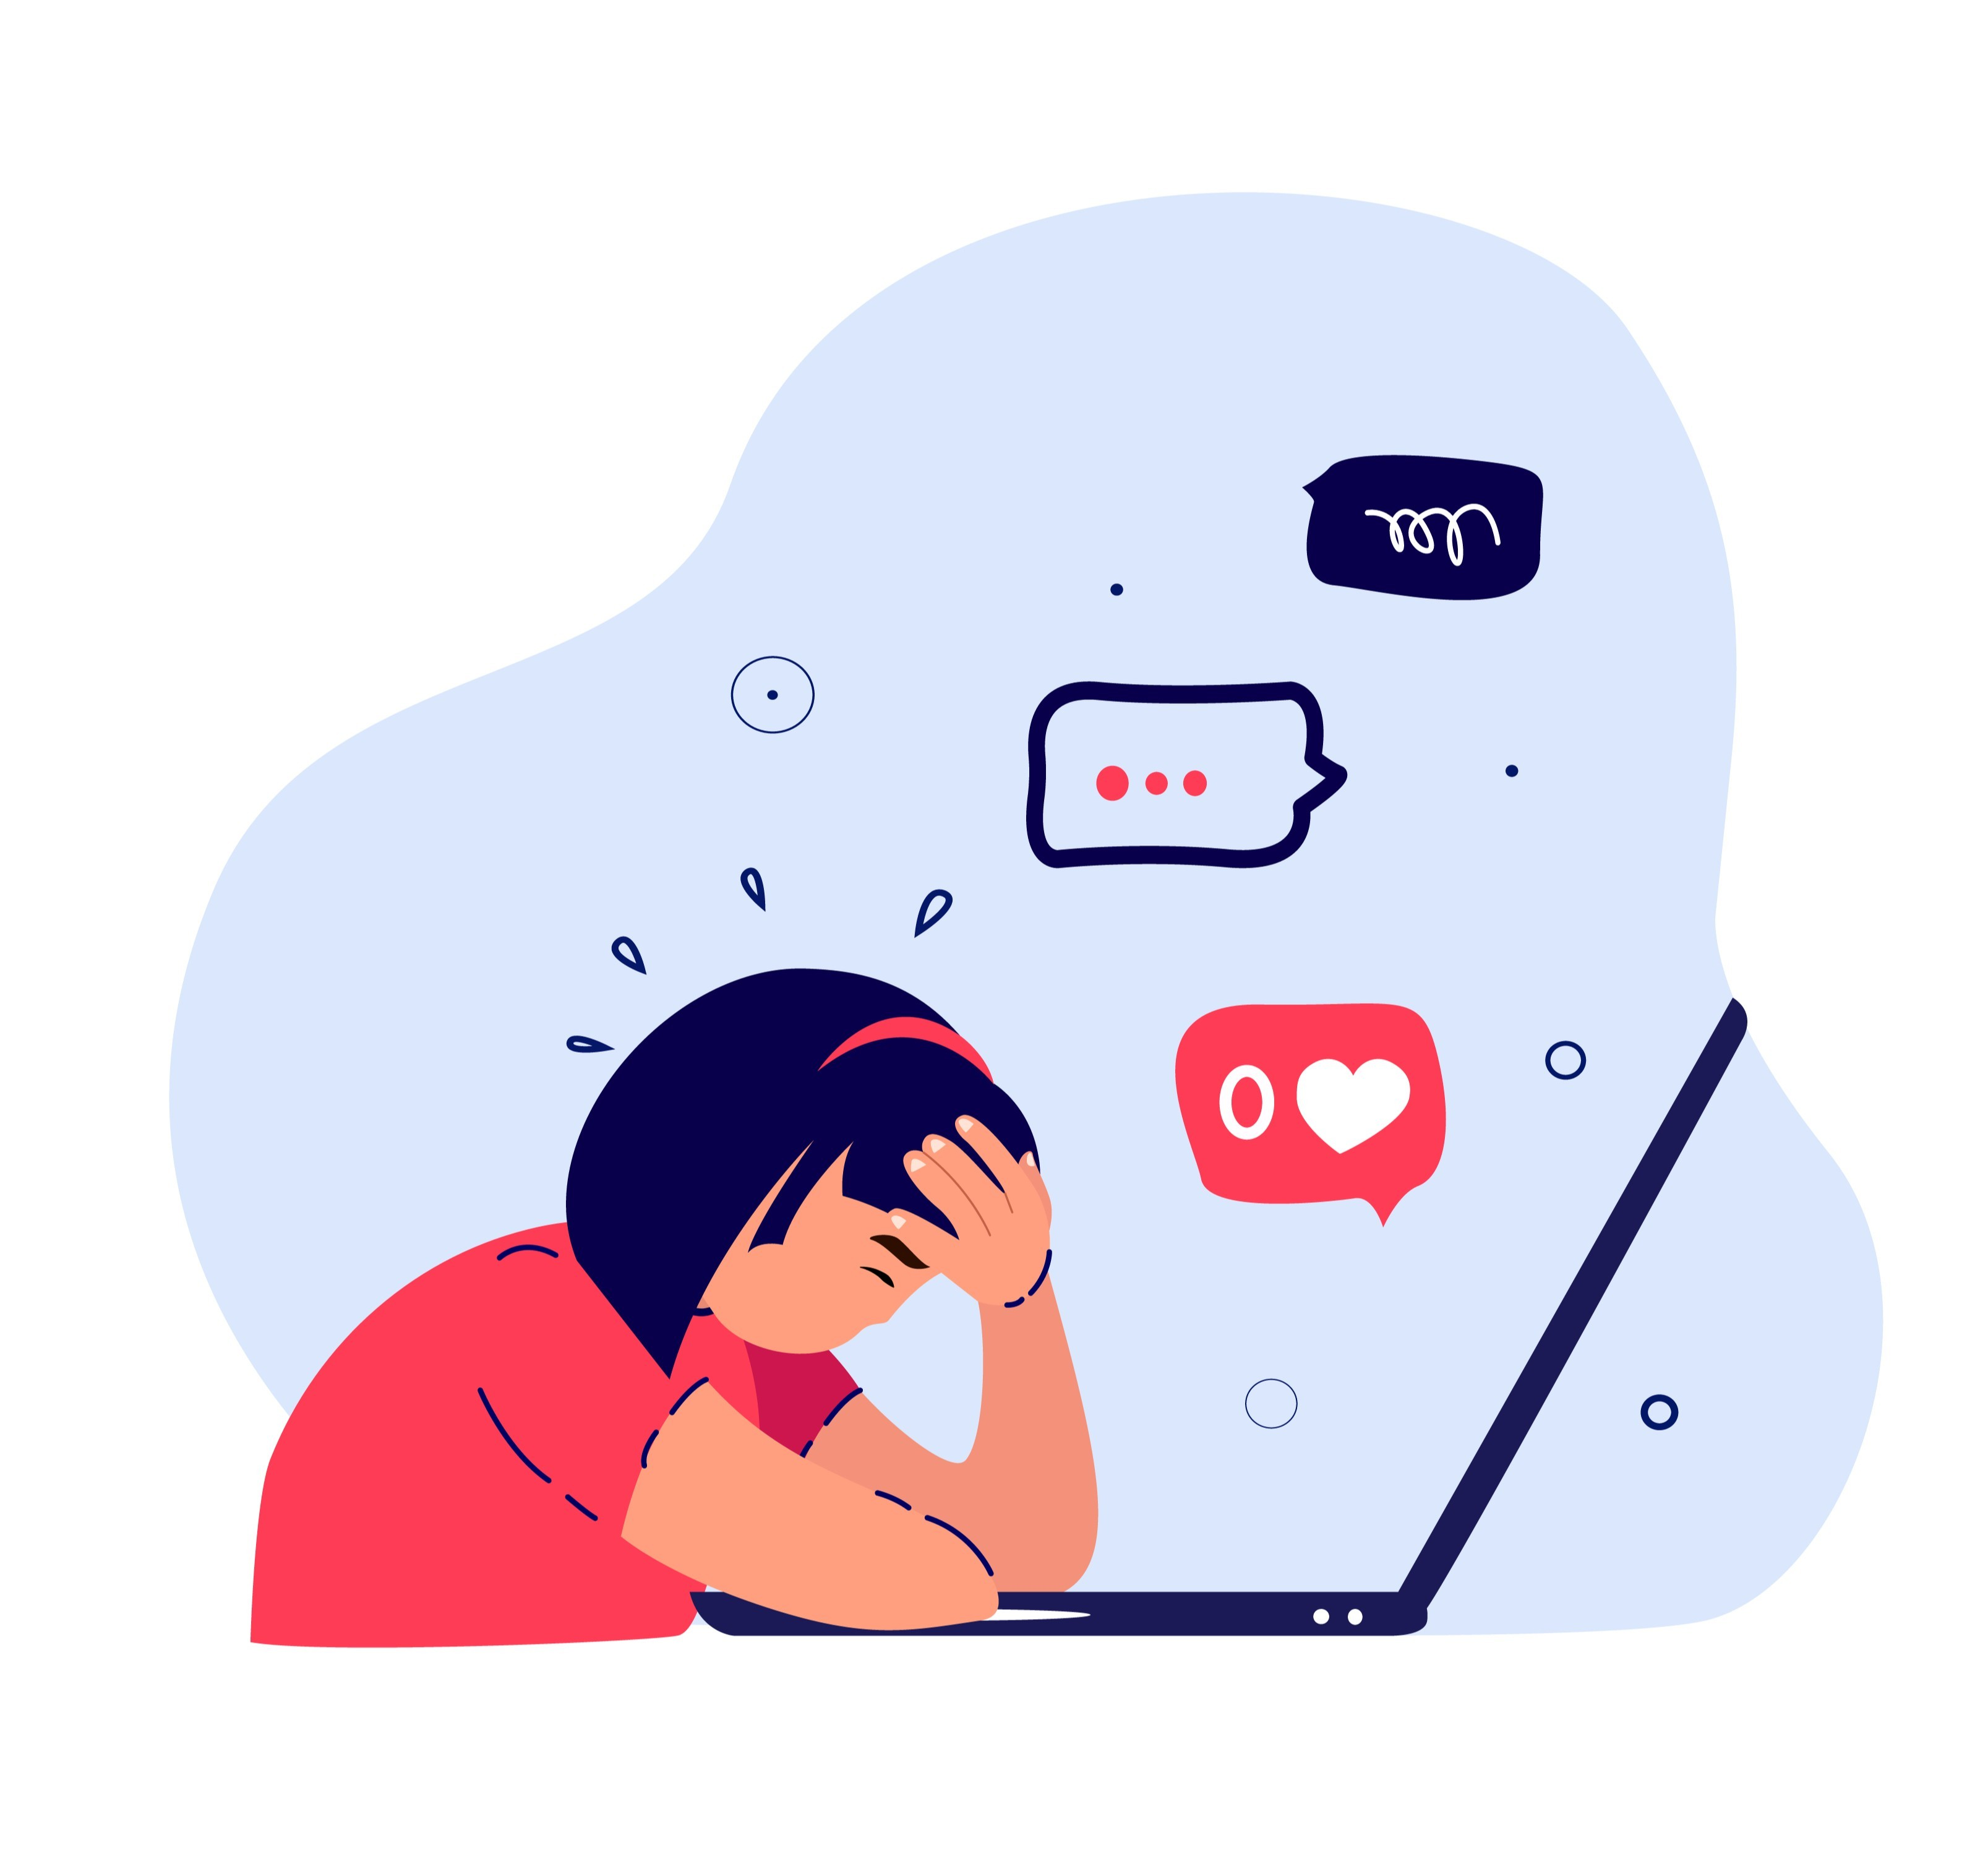 What is digital fatigue and how can we battle it?